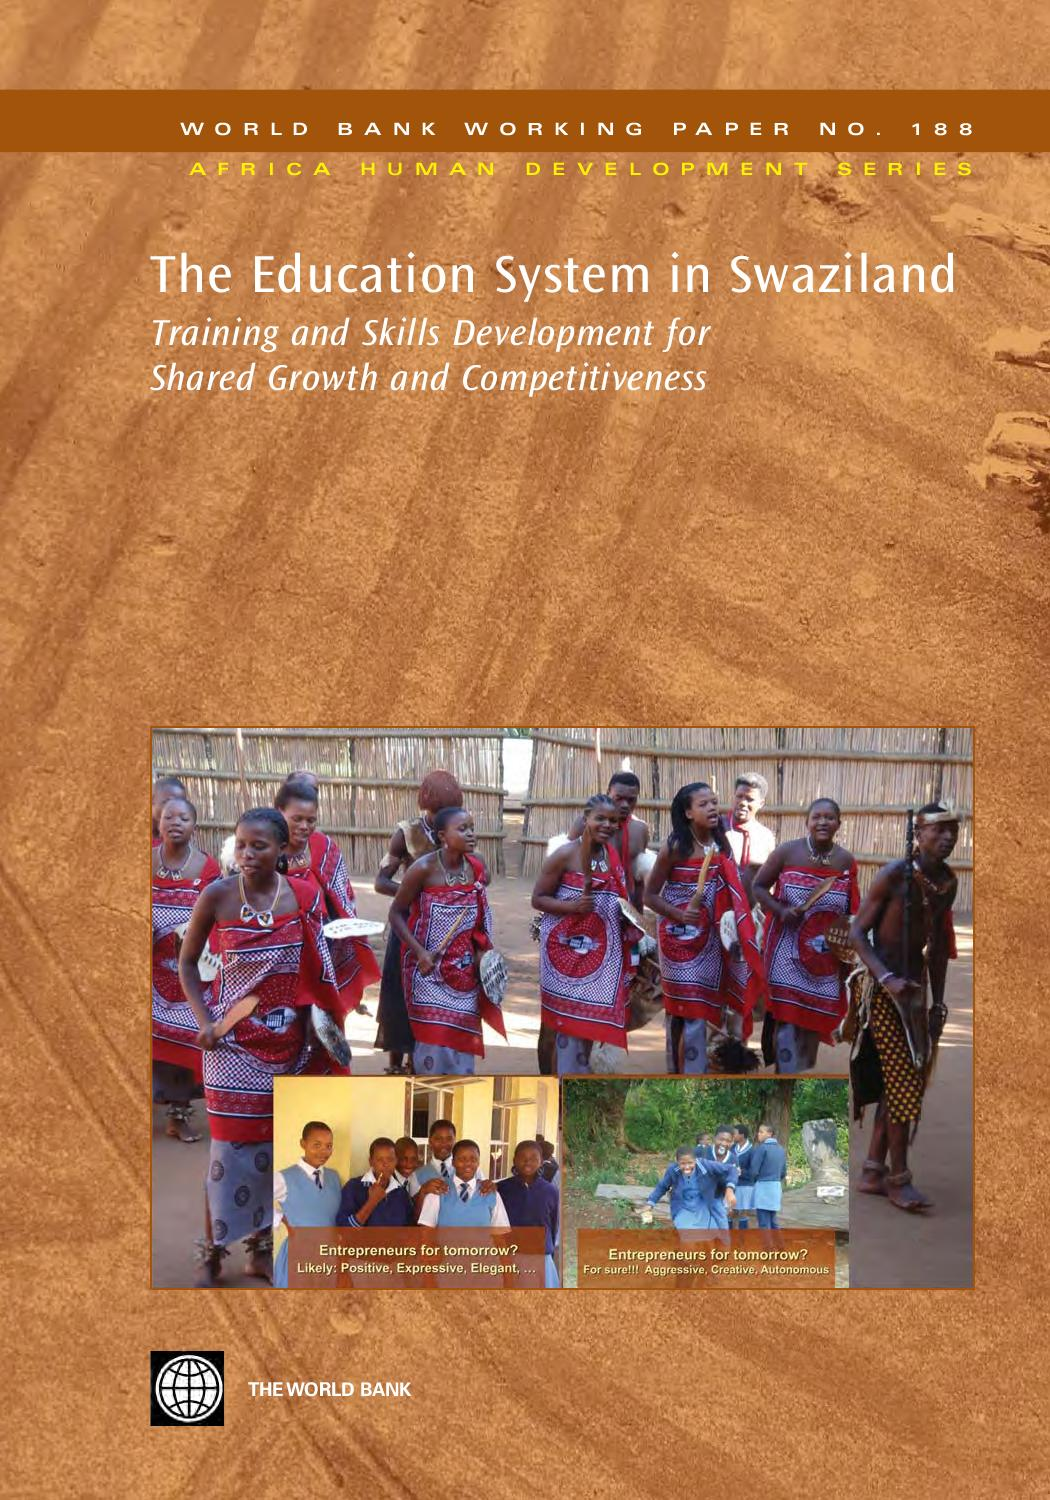 The Education System in Swaziland by World Bank Group